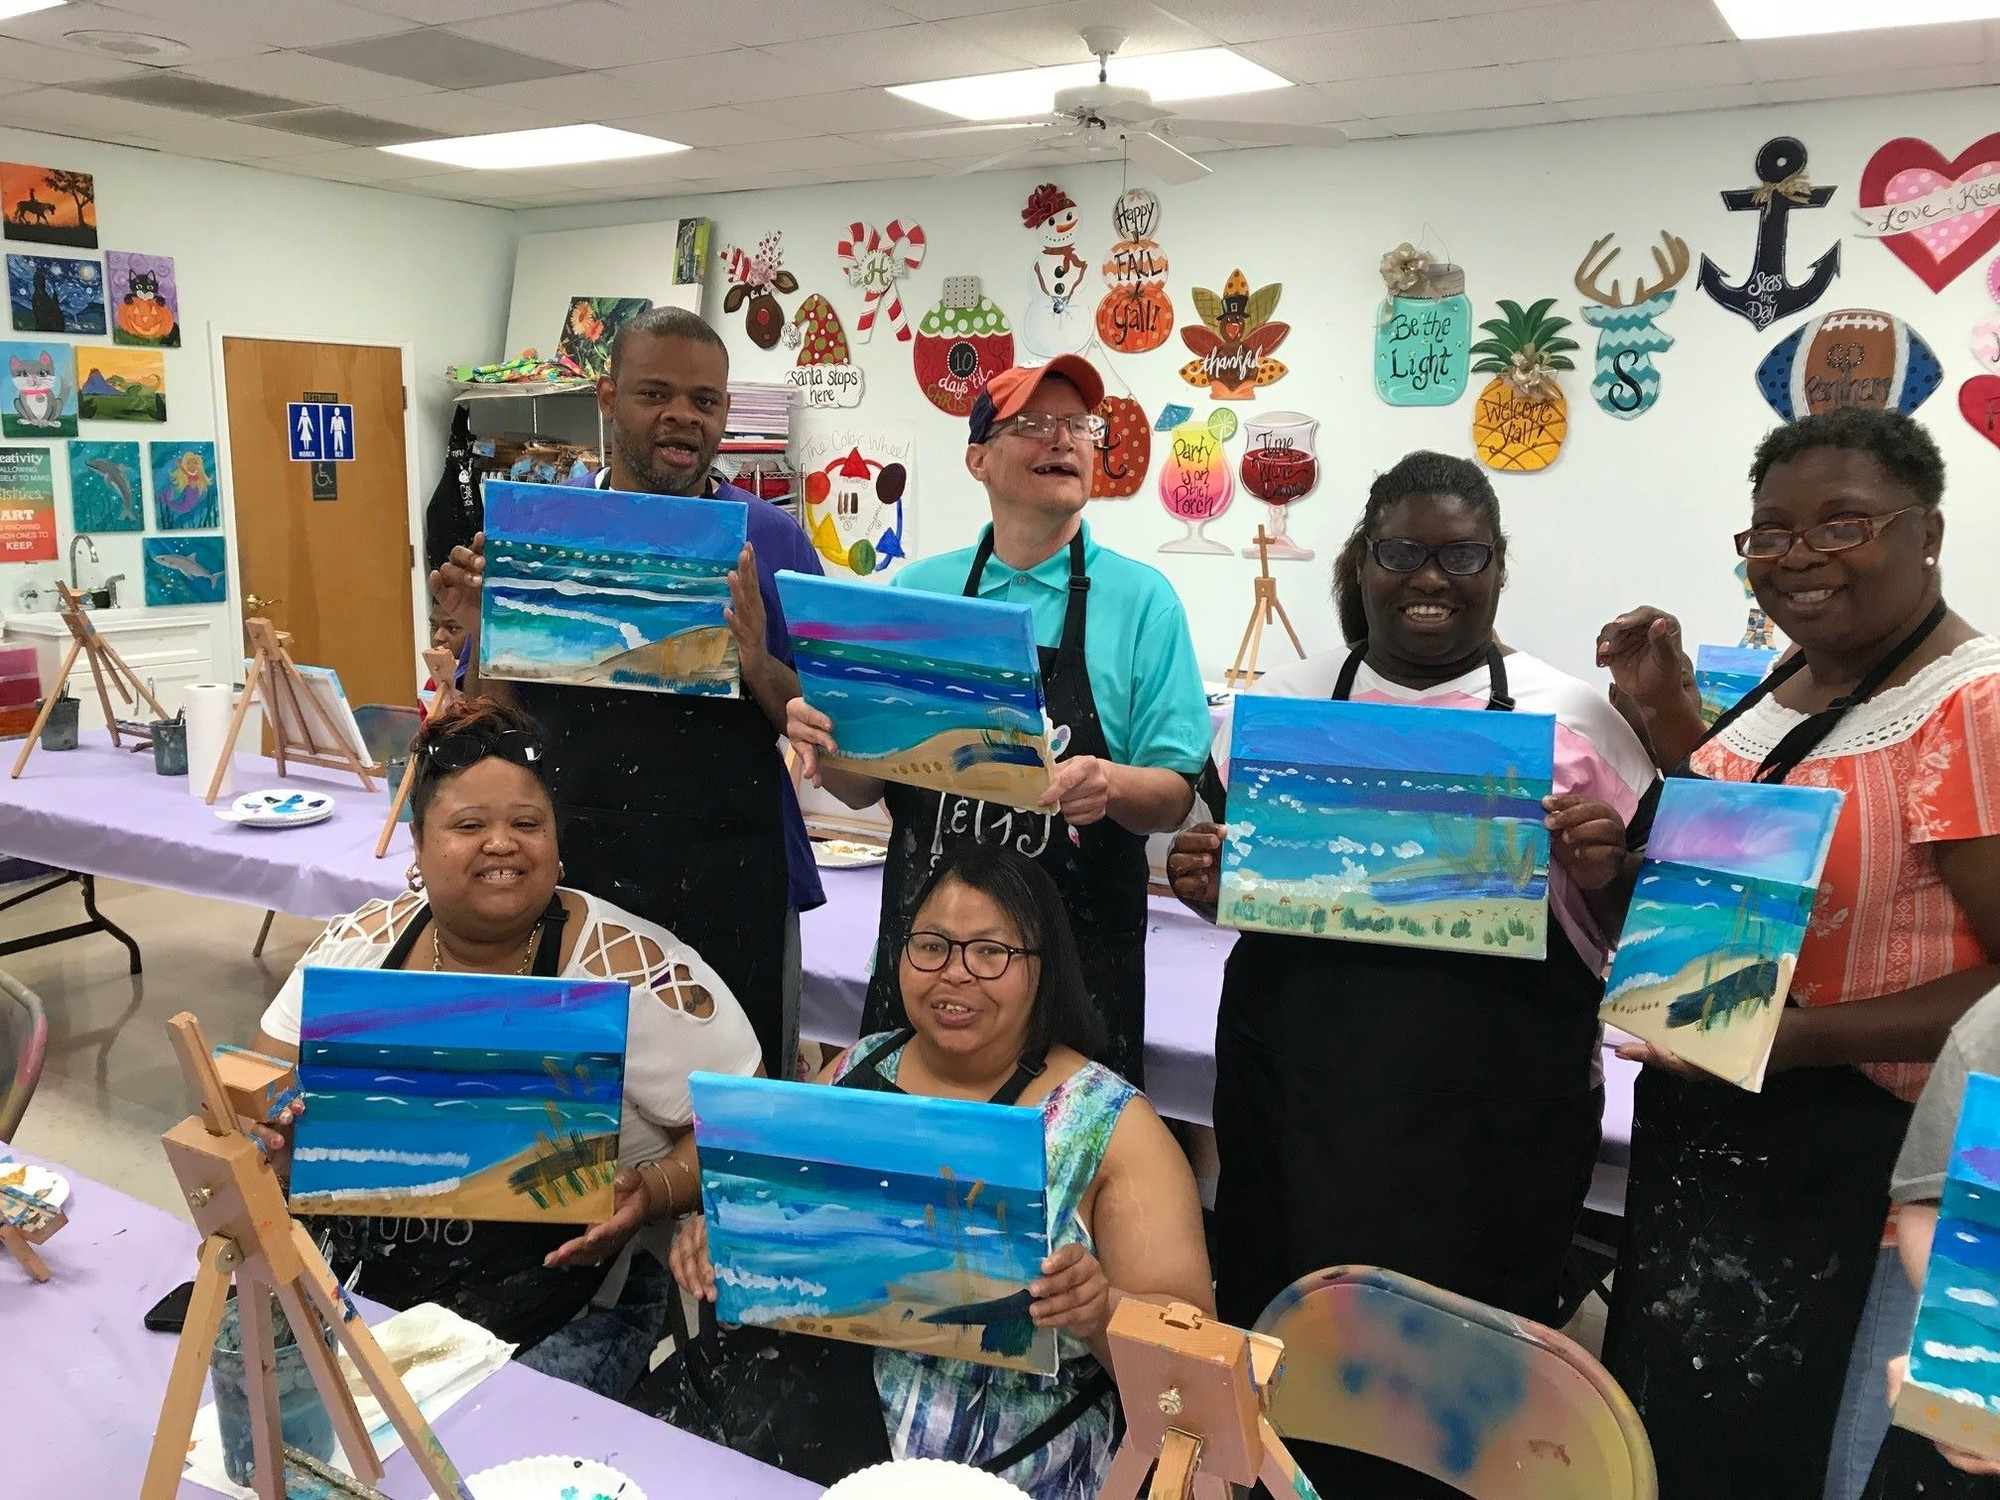 Clarendon County Disabilities and Special Needs Board took 14 consumers on a trip to Sumter's Sip & Gogh for a painting class on Tuesday. Each participant painted a picture to take home and enjoy. This outing is one of many that the board offers in an effort to give them the same opportunities that non-disabled individuals enjoy.